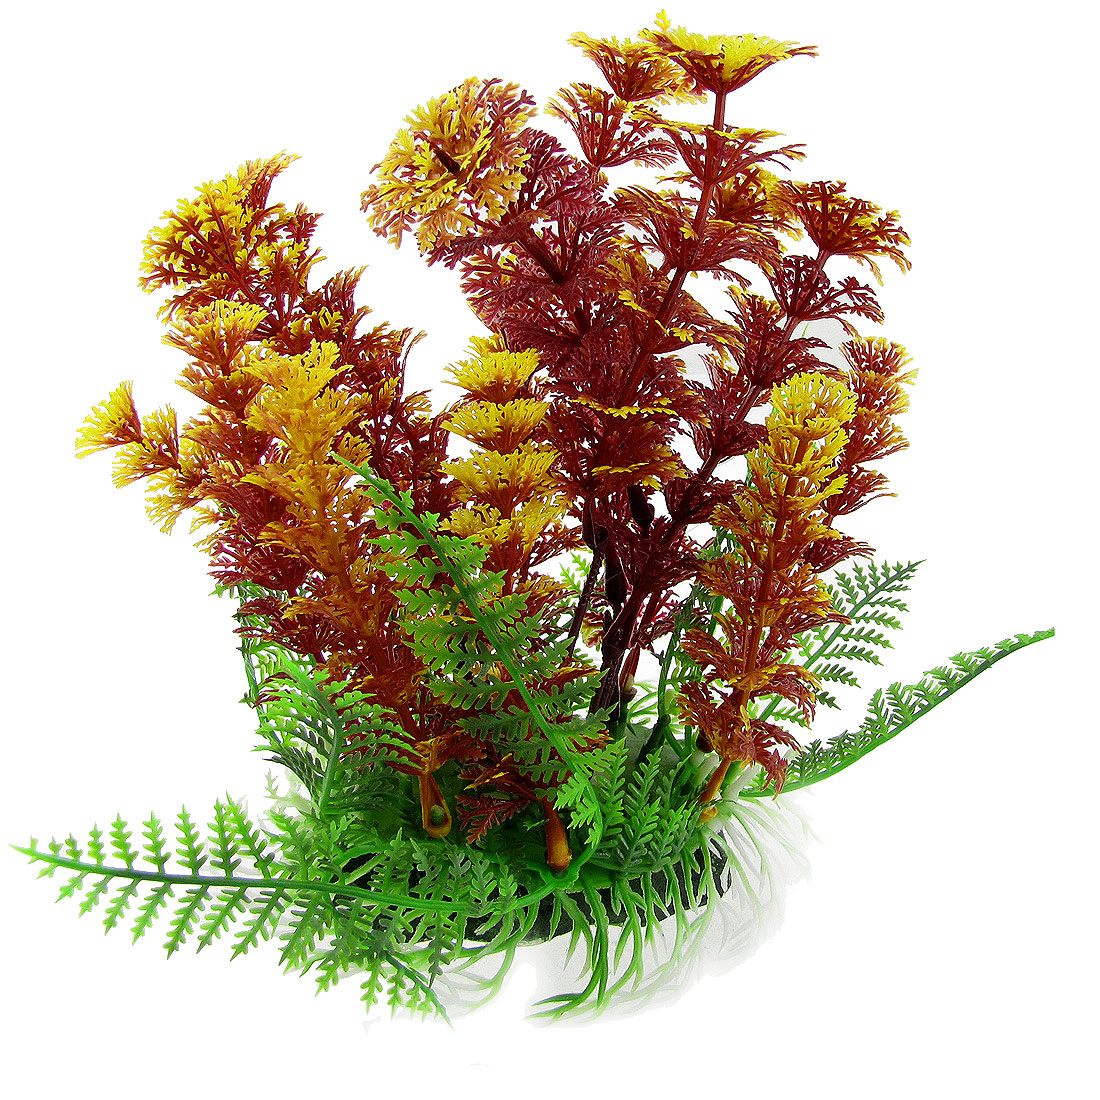 Ceramic Base Fish Tank Aquarium Plastic Emulational Grass Dark Red Yellow Plants Decor